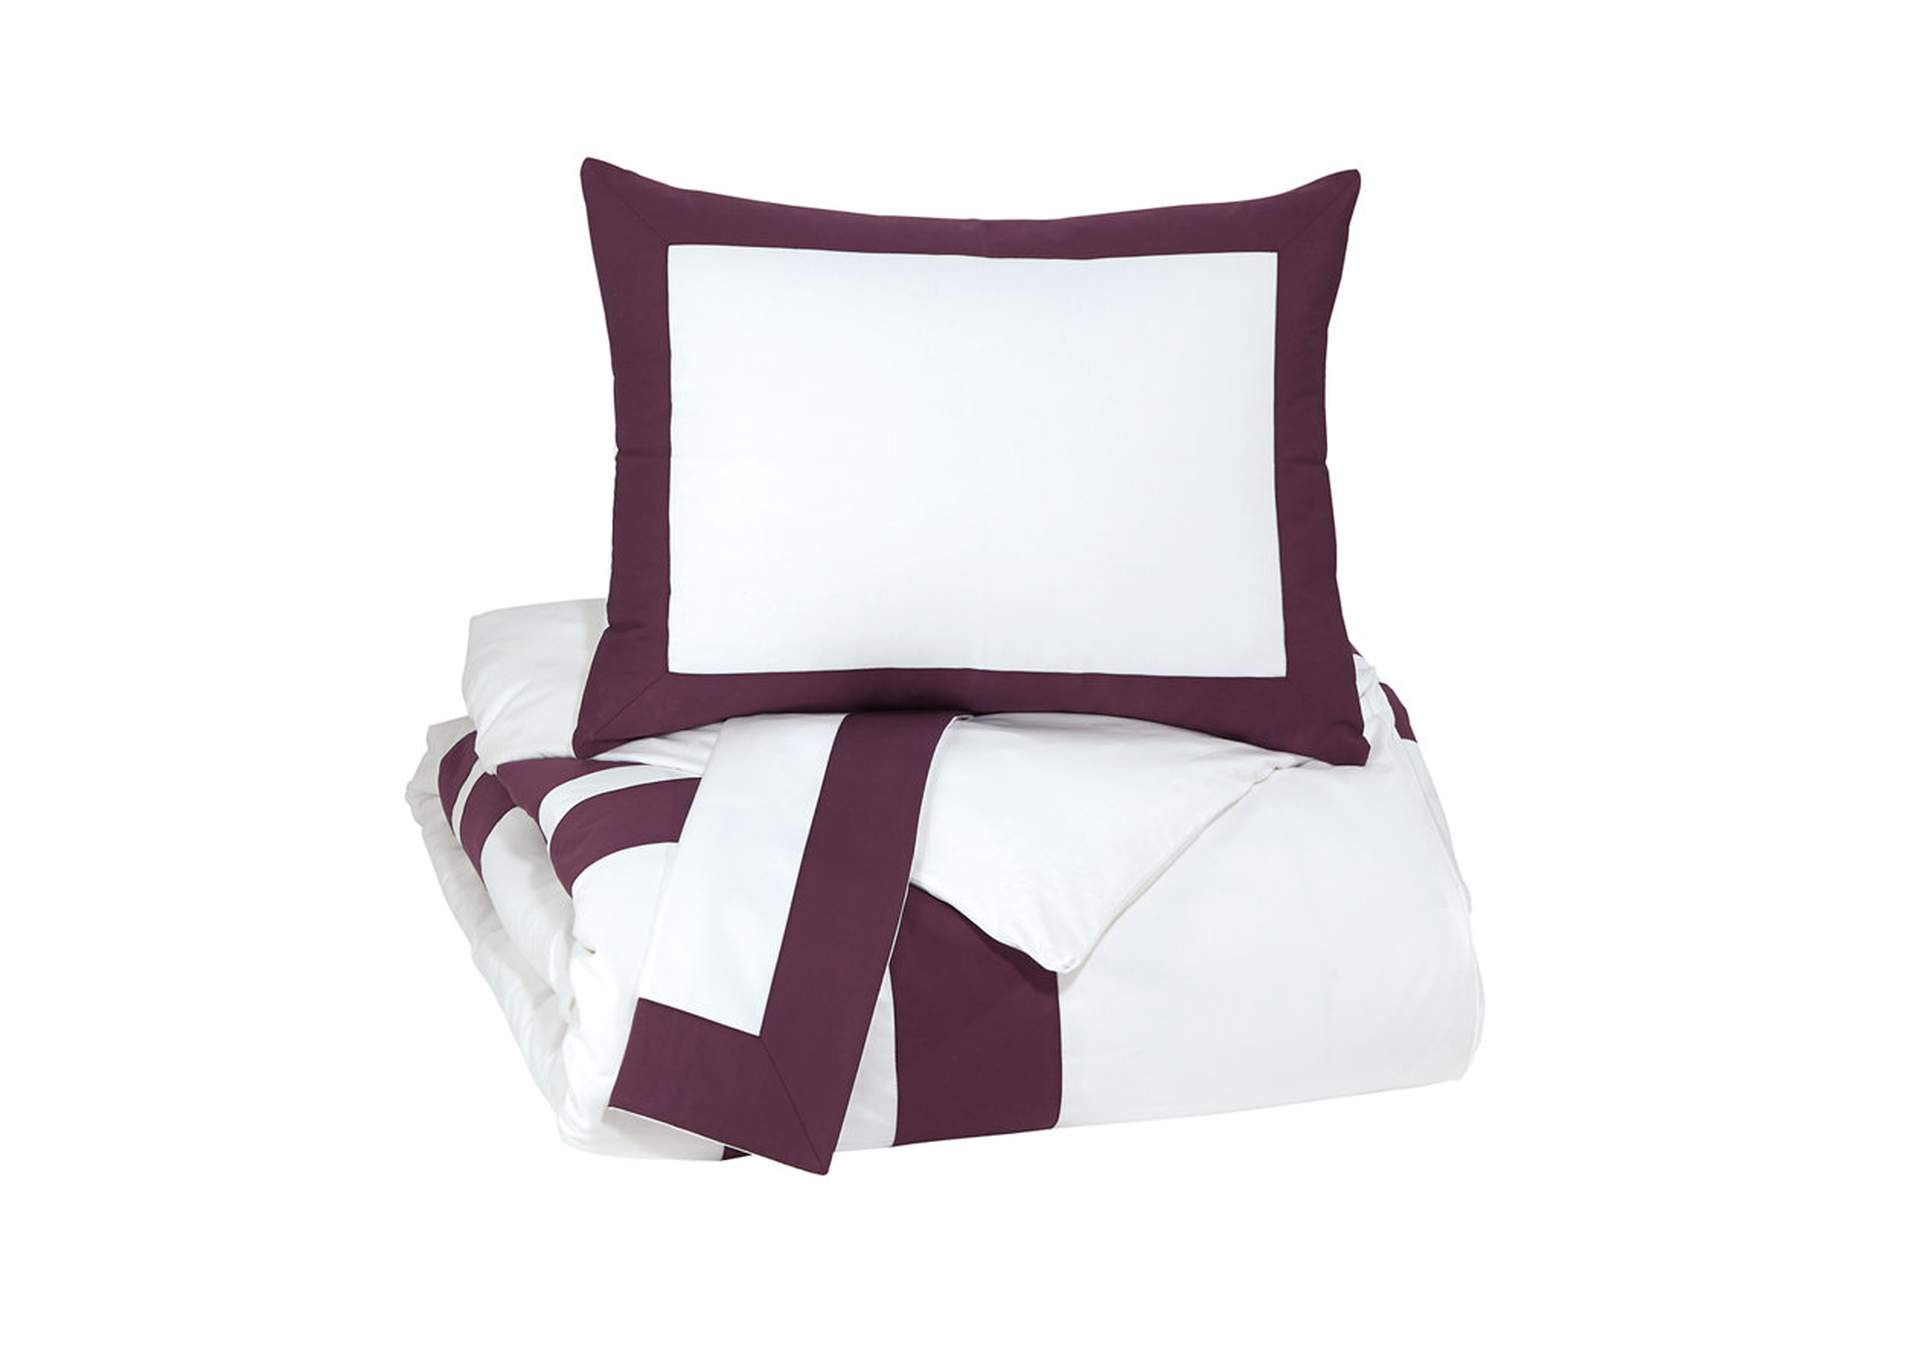 Daruka Plum King Duvet Cover Set,Signature Design By Ashley